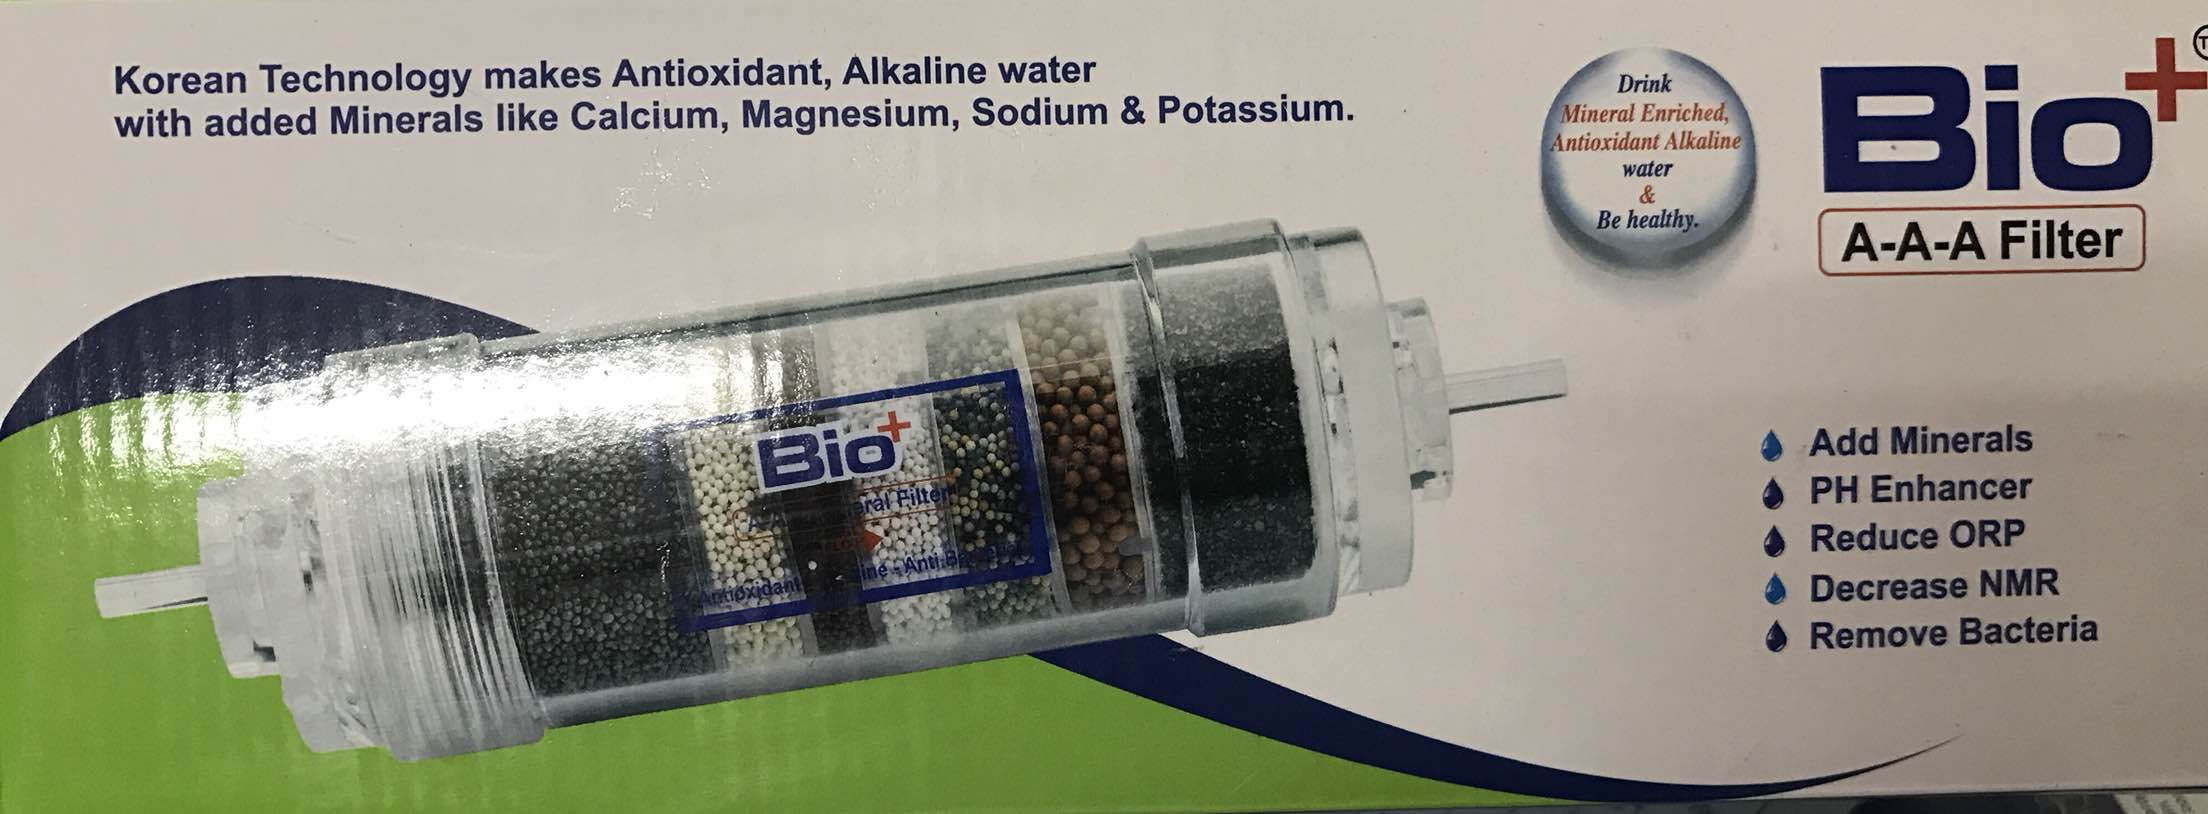 Bio plus AAA ceramic filter is applicable for treatment of RO system it adds essential minerals which are generally removed by the R.O. plant during the purifications princess. Further, it increases the pH alkalinity of water.  In present era, there has been a drastic change in eating habits and life styles of people. Now a day, the connection of acidic food such as fast food, oily food & drink, alcohol , tea & coffee has increased to a grate extent. People are exposed to large amount of acidic waste due to environmental pollution, president life style and also lack of physical exercise which ultimately leads to chronic disease and various complications. Bio Plus AAA Filter gives alkaline which helps to neutralise such acidic impurities and supports in prevention of Vitamin deficiencies.